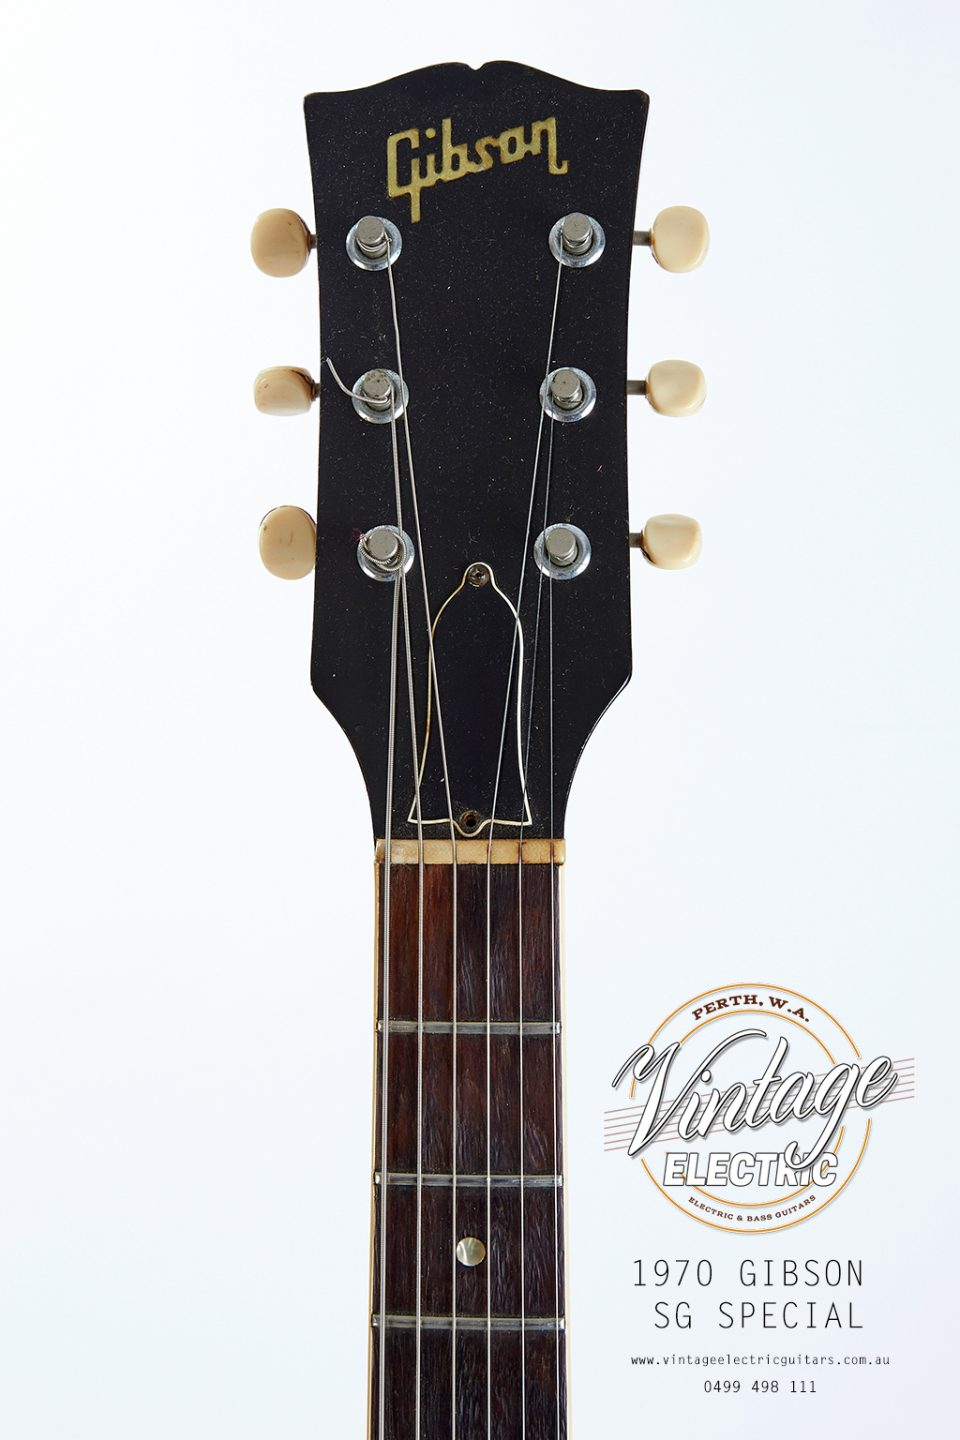 1970 Gibson SG Special Headstock